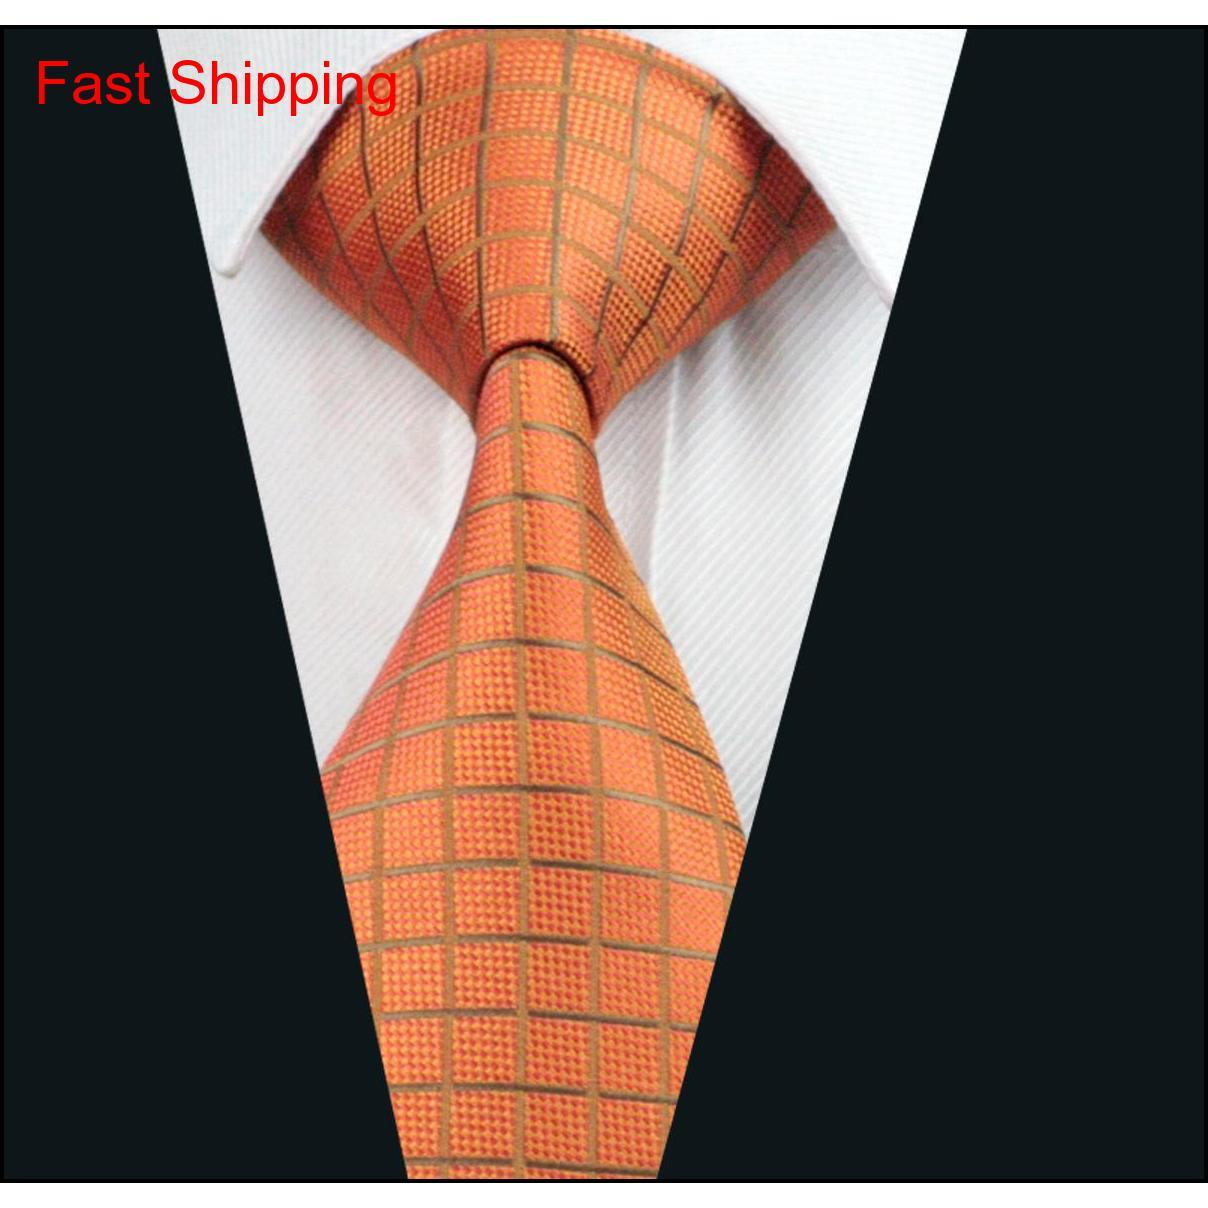 Classic Plaid Orange Mens Ties Pocket Square Cufflinks Set Jacquard Woven Neck Tie Set Silk Mens Set Business Wo qylEPx queen66